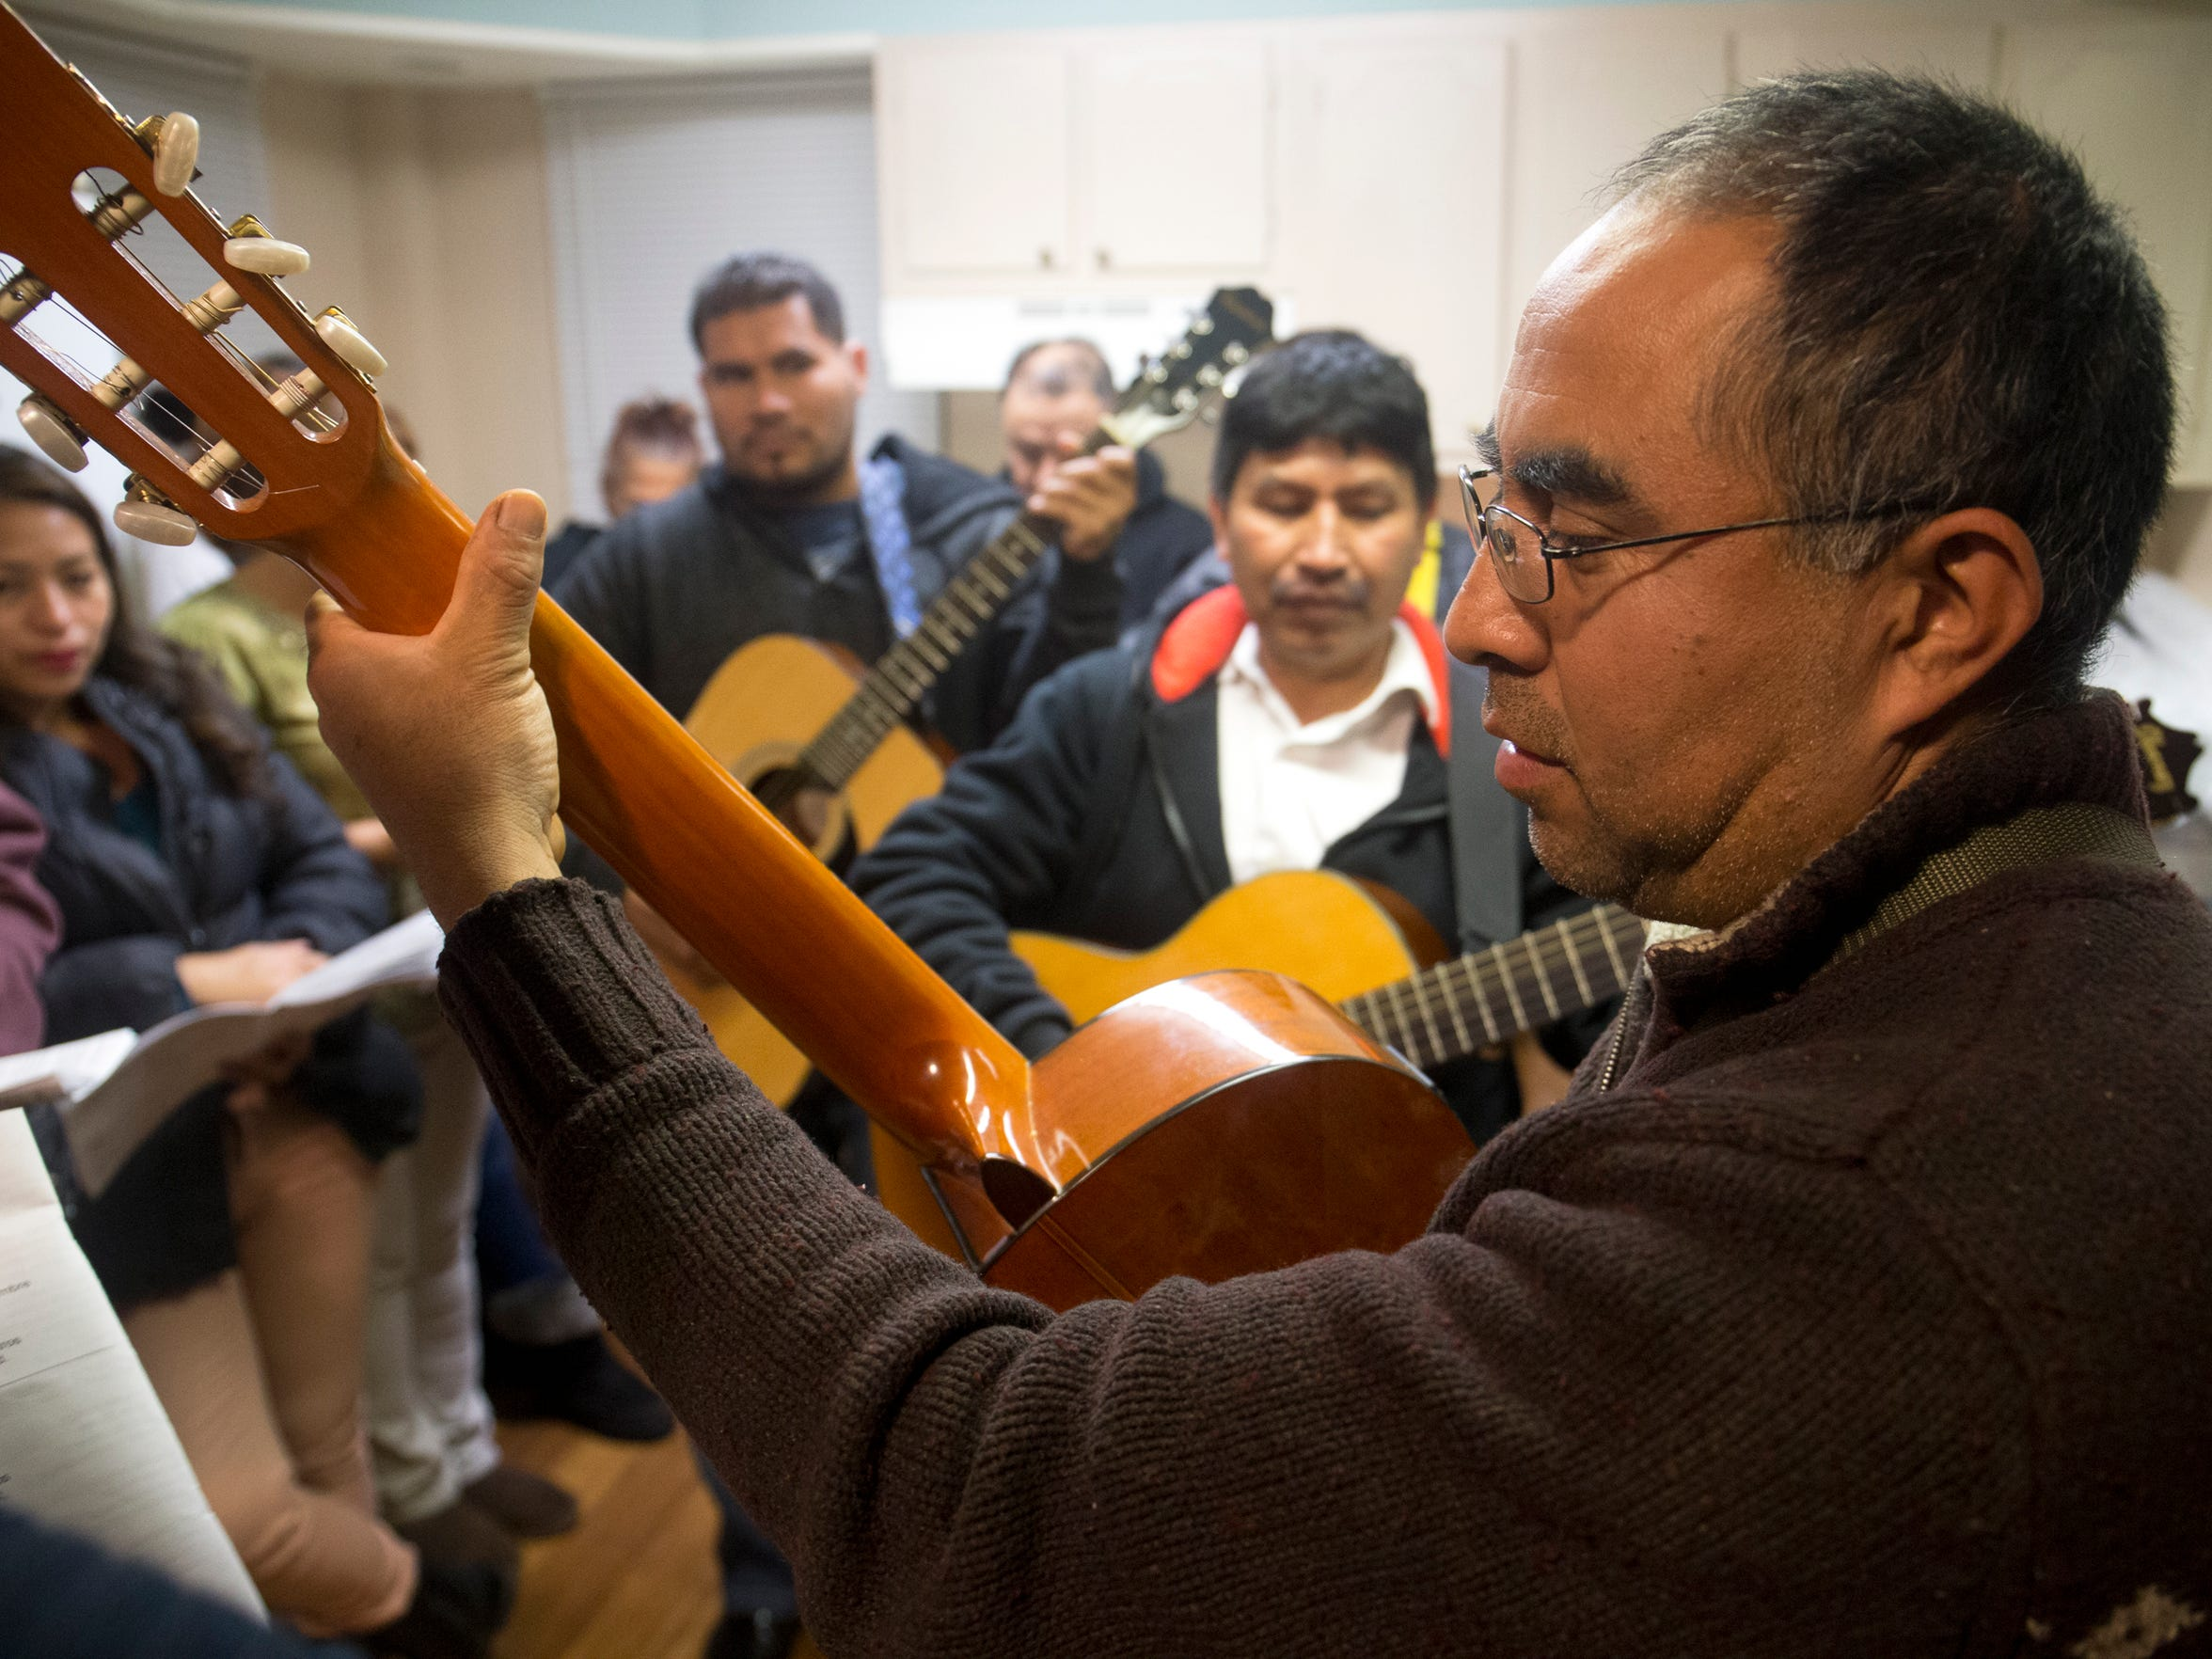 Luis Tapia of Lakewood is among the guitarists playing at an All Saints Episcopal Church celebration of Las Posadas, Monday, December 21, 2015, in Lakewood.